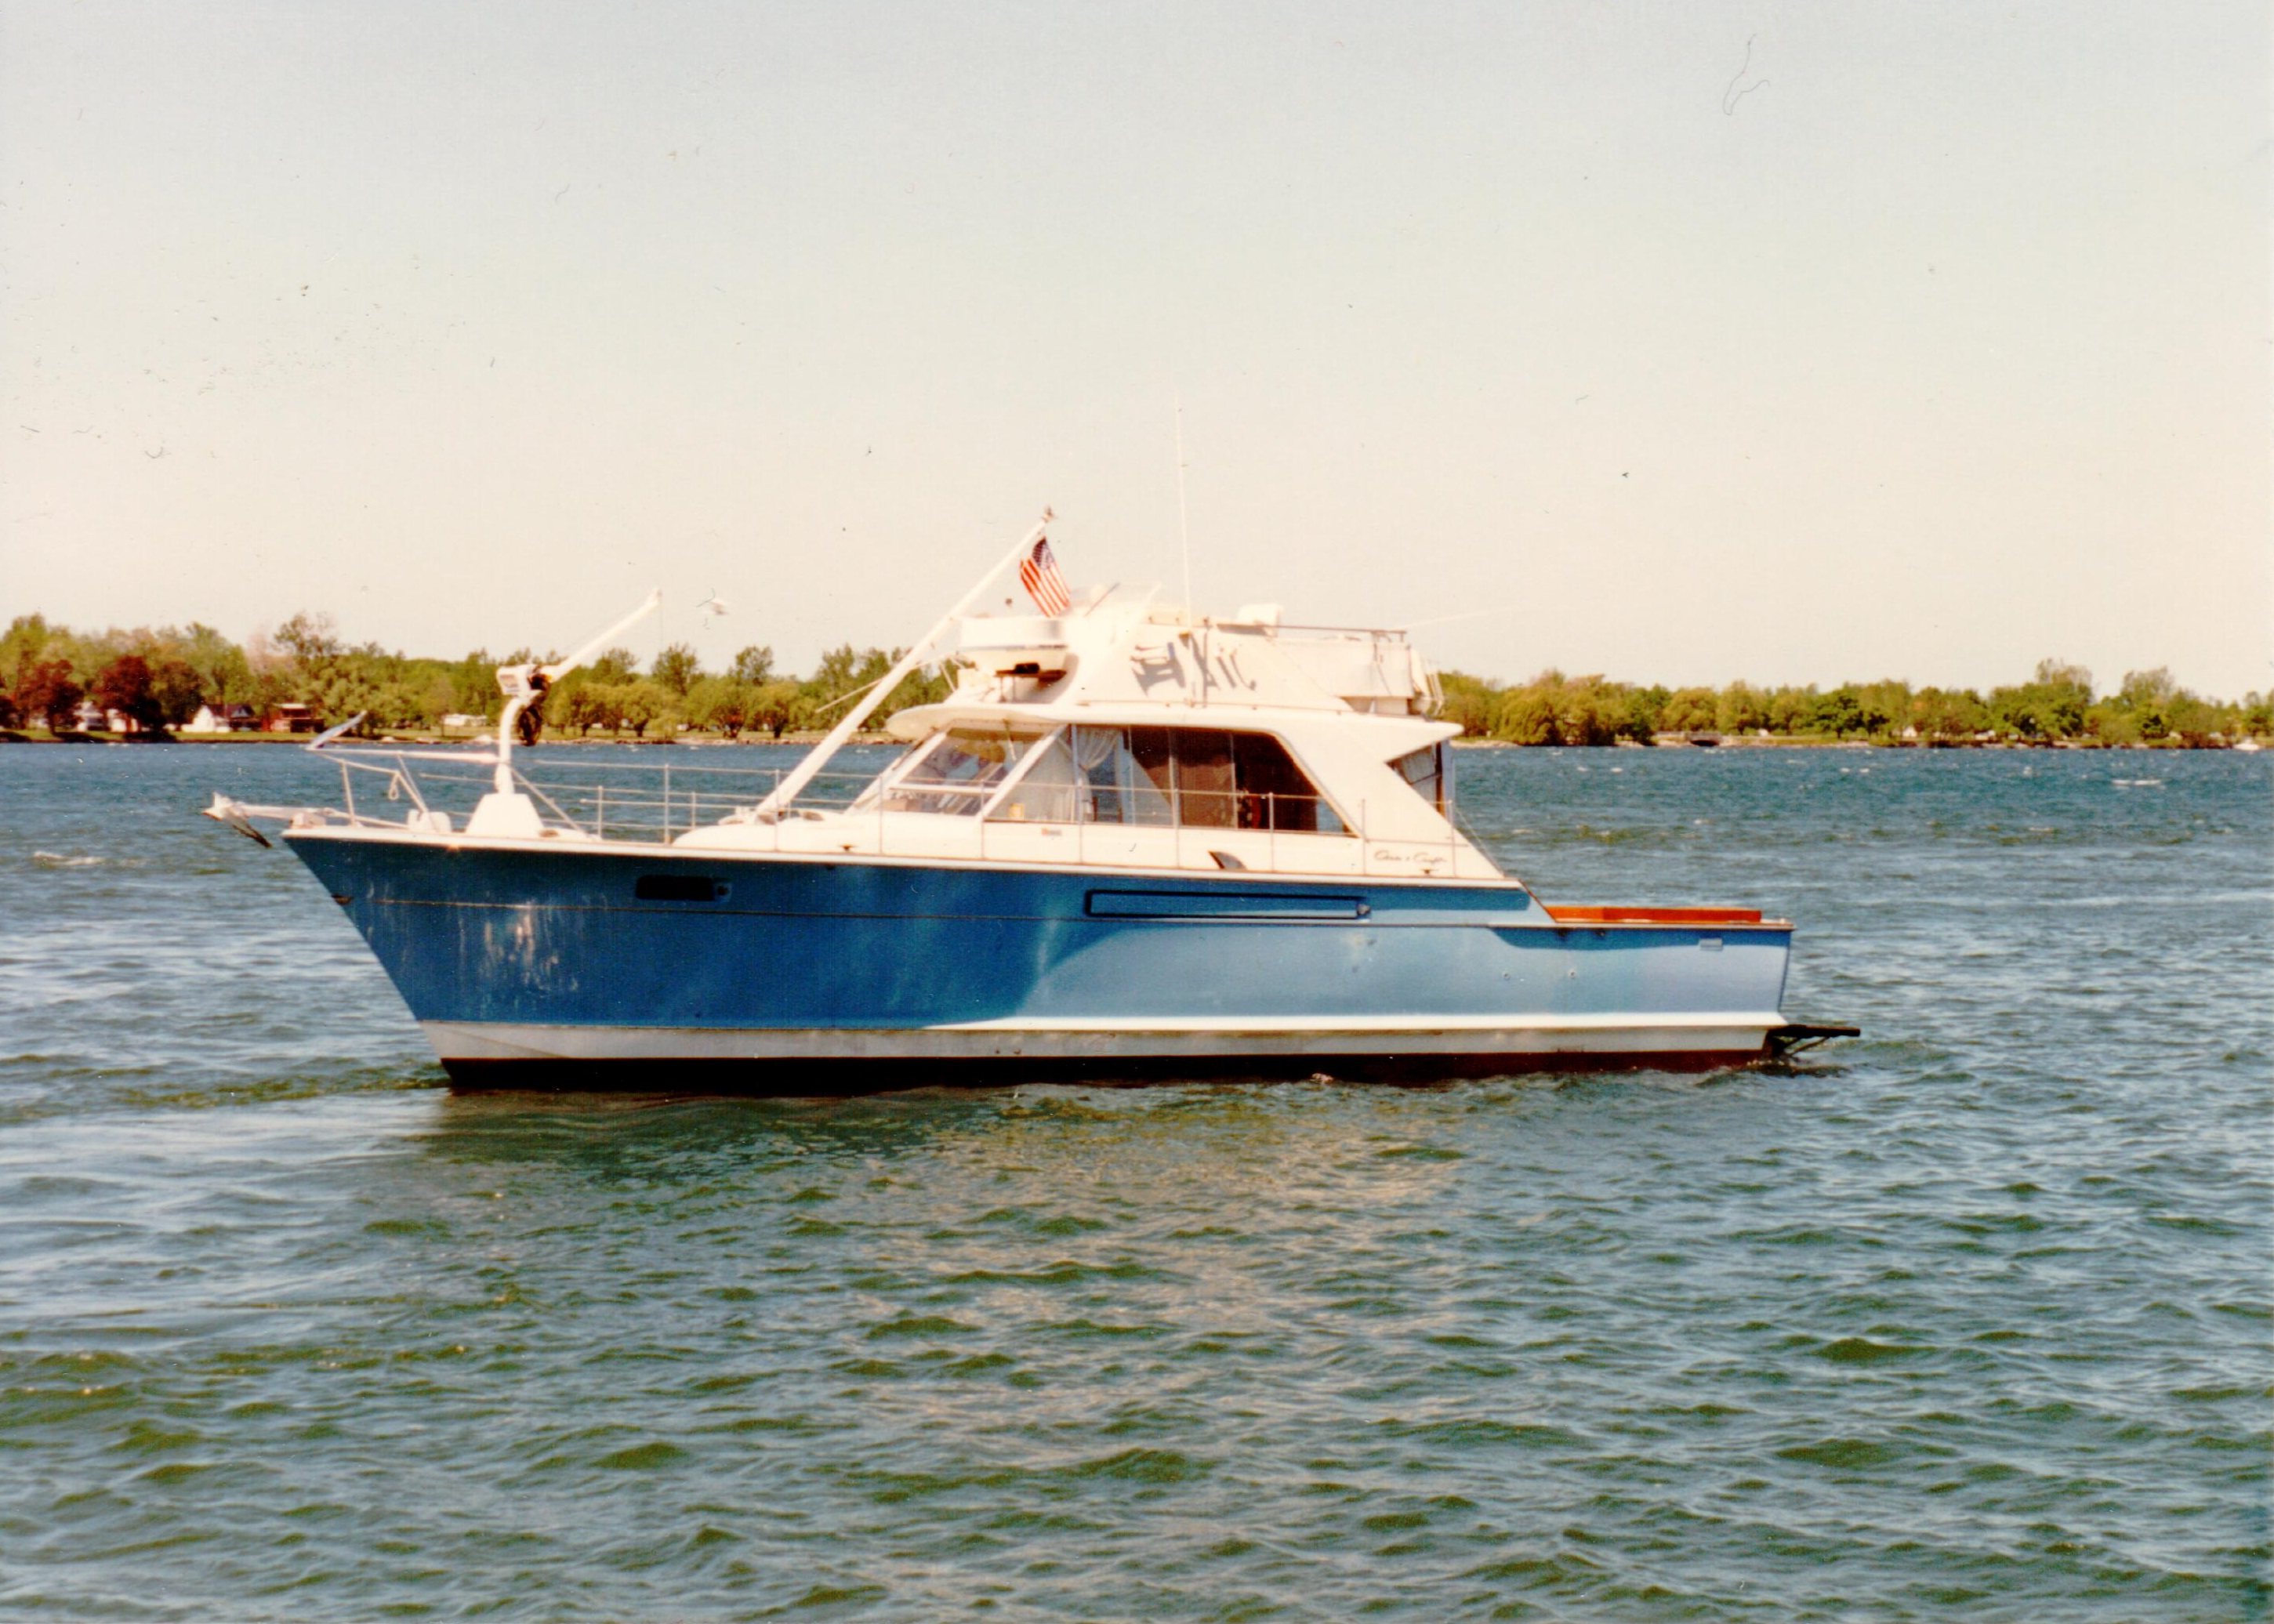 A photo of a blue and white boat facing left in the water.